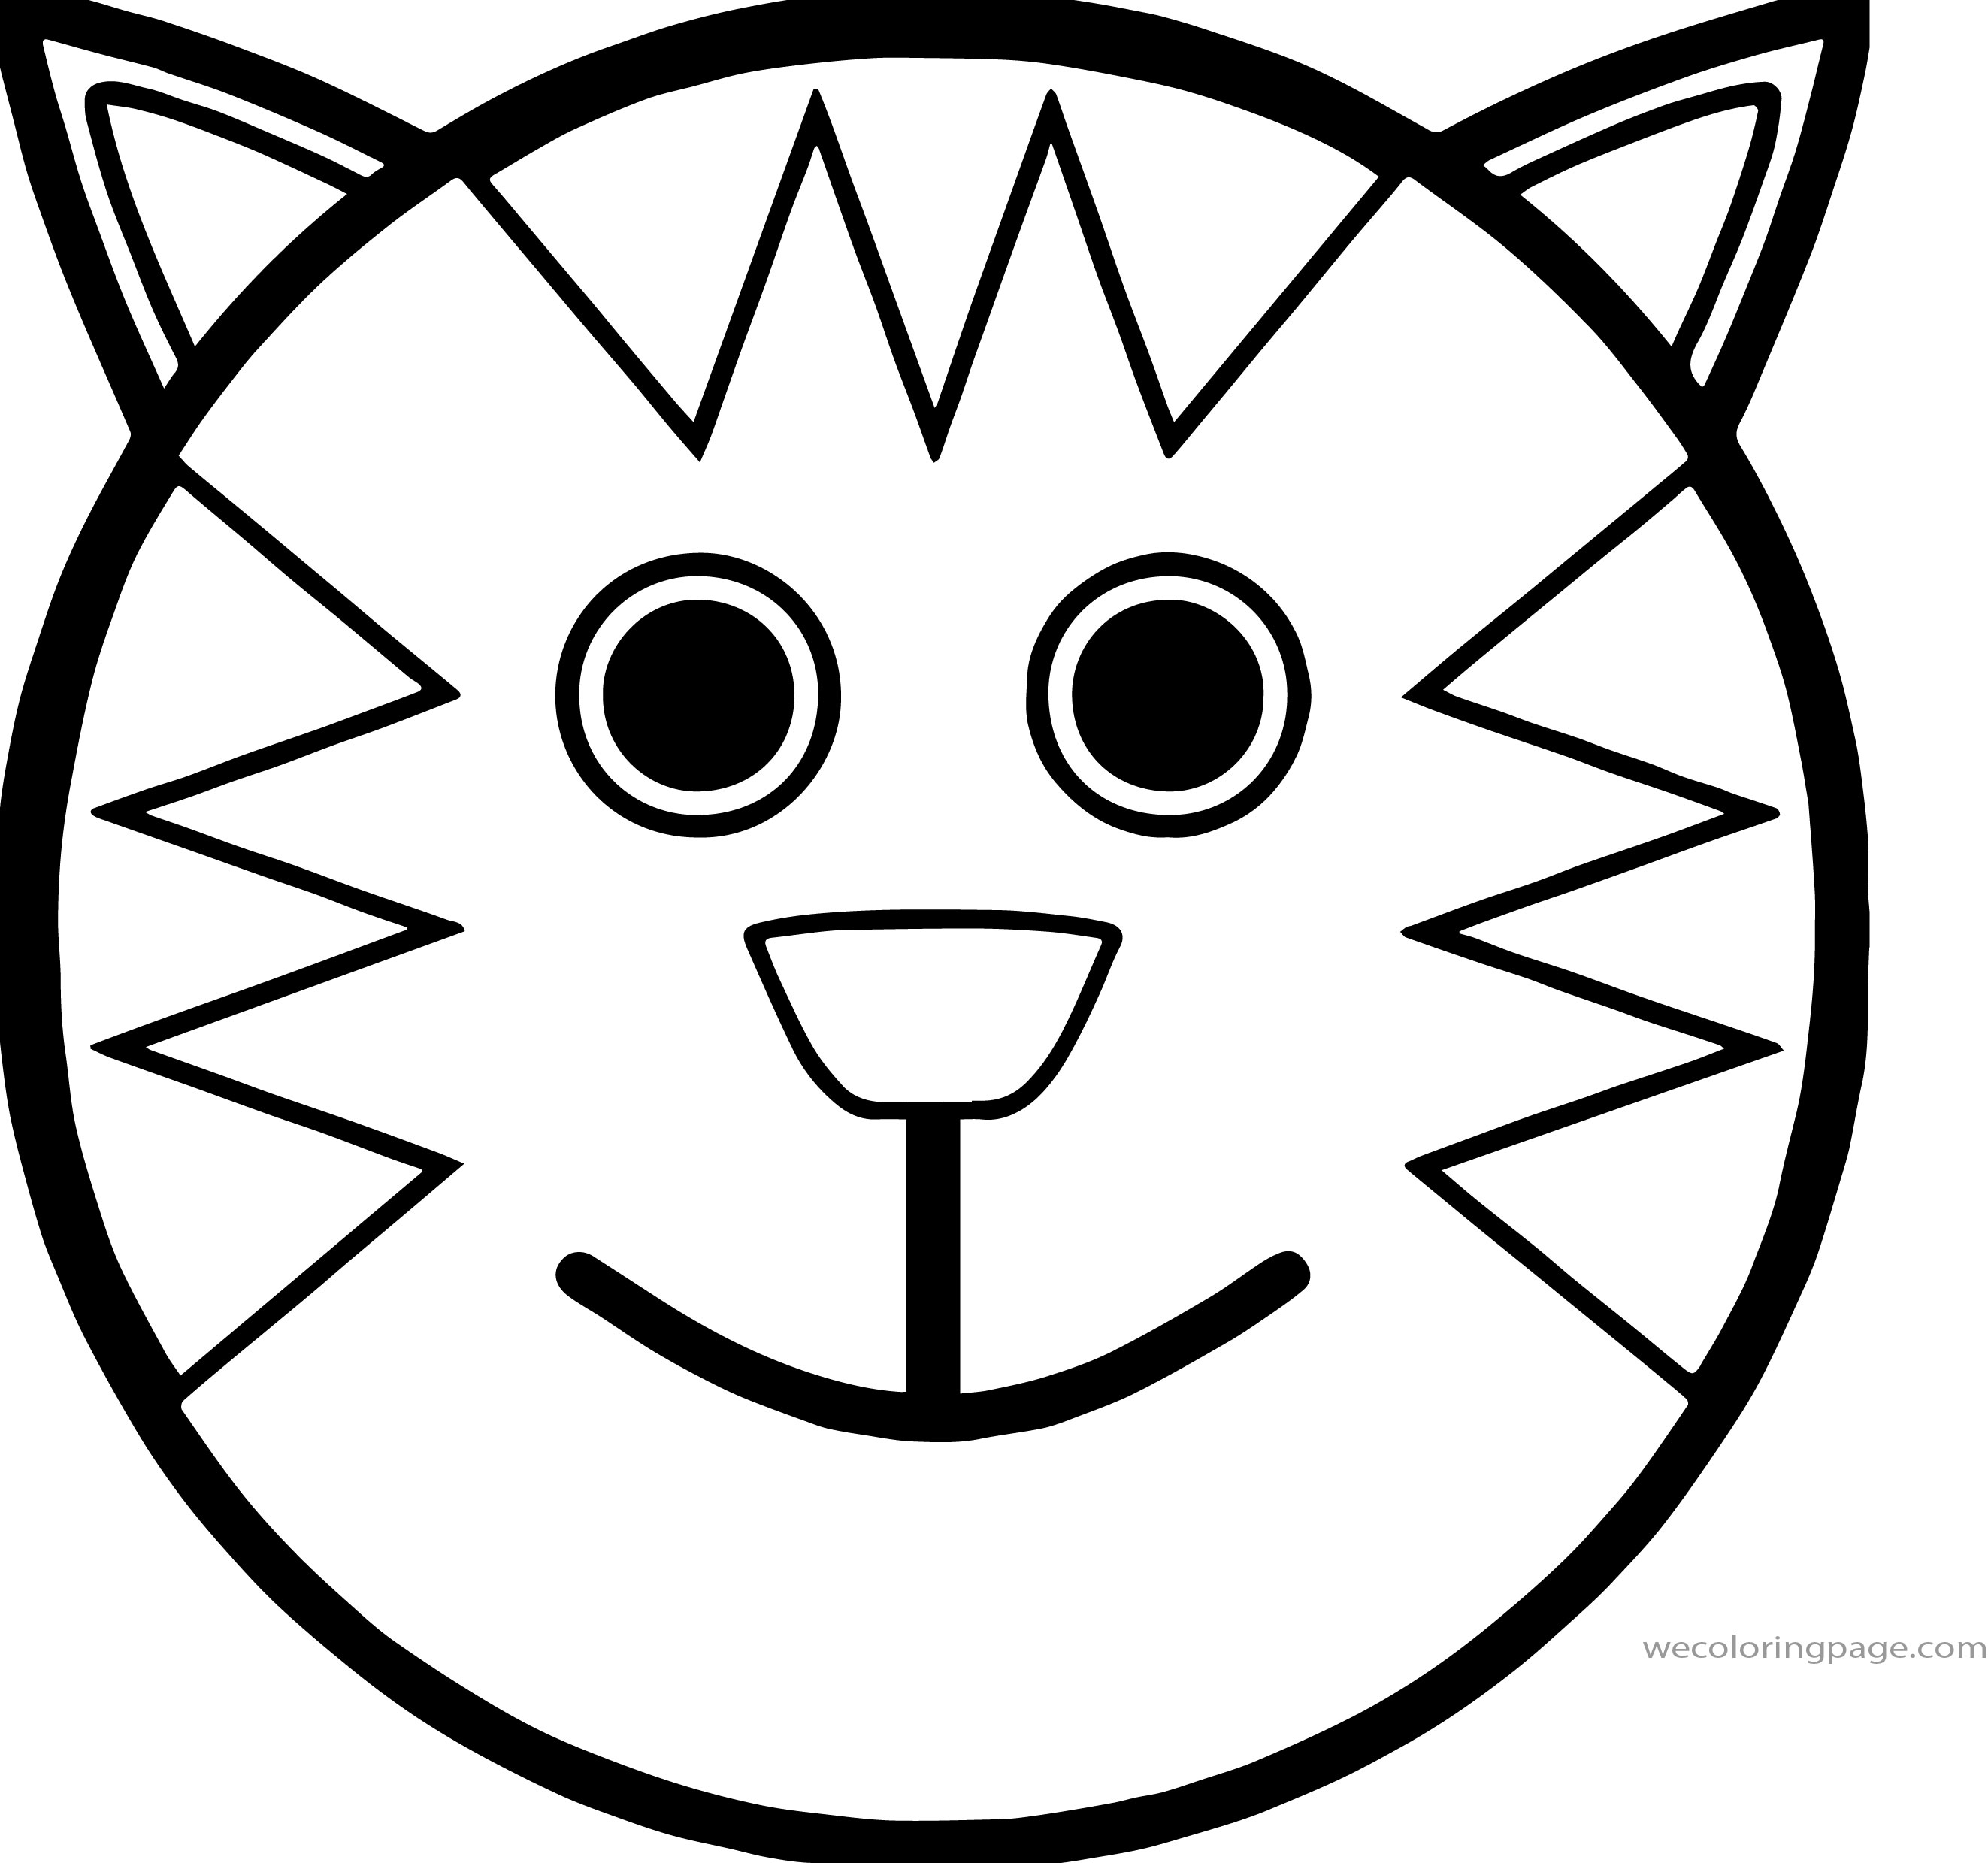 cat face coloring page easy cat face drawing at getdrawingscom free for coloring cat page face